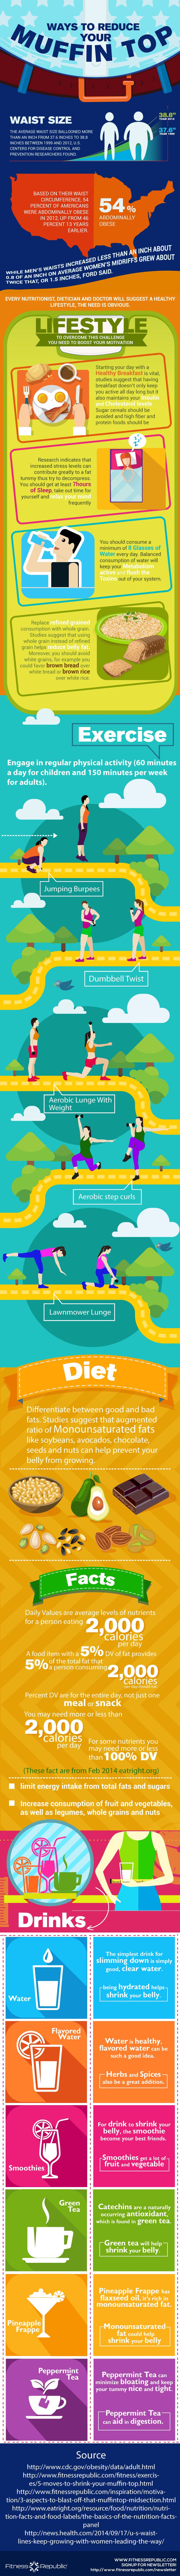 454 best weight loss images on pinterest work outs losing weight ready to lose the bulge that spills over the waistline of your pants geenschuldenfo Choice Image